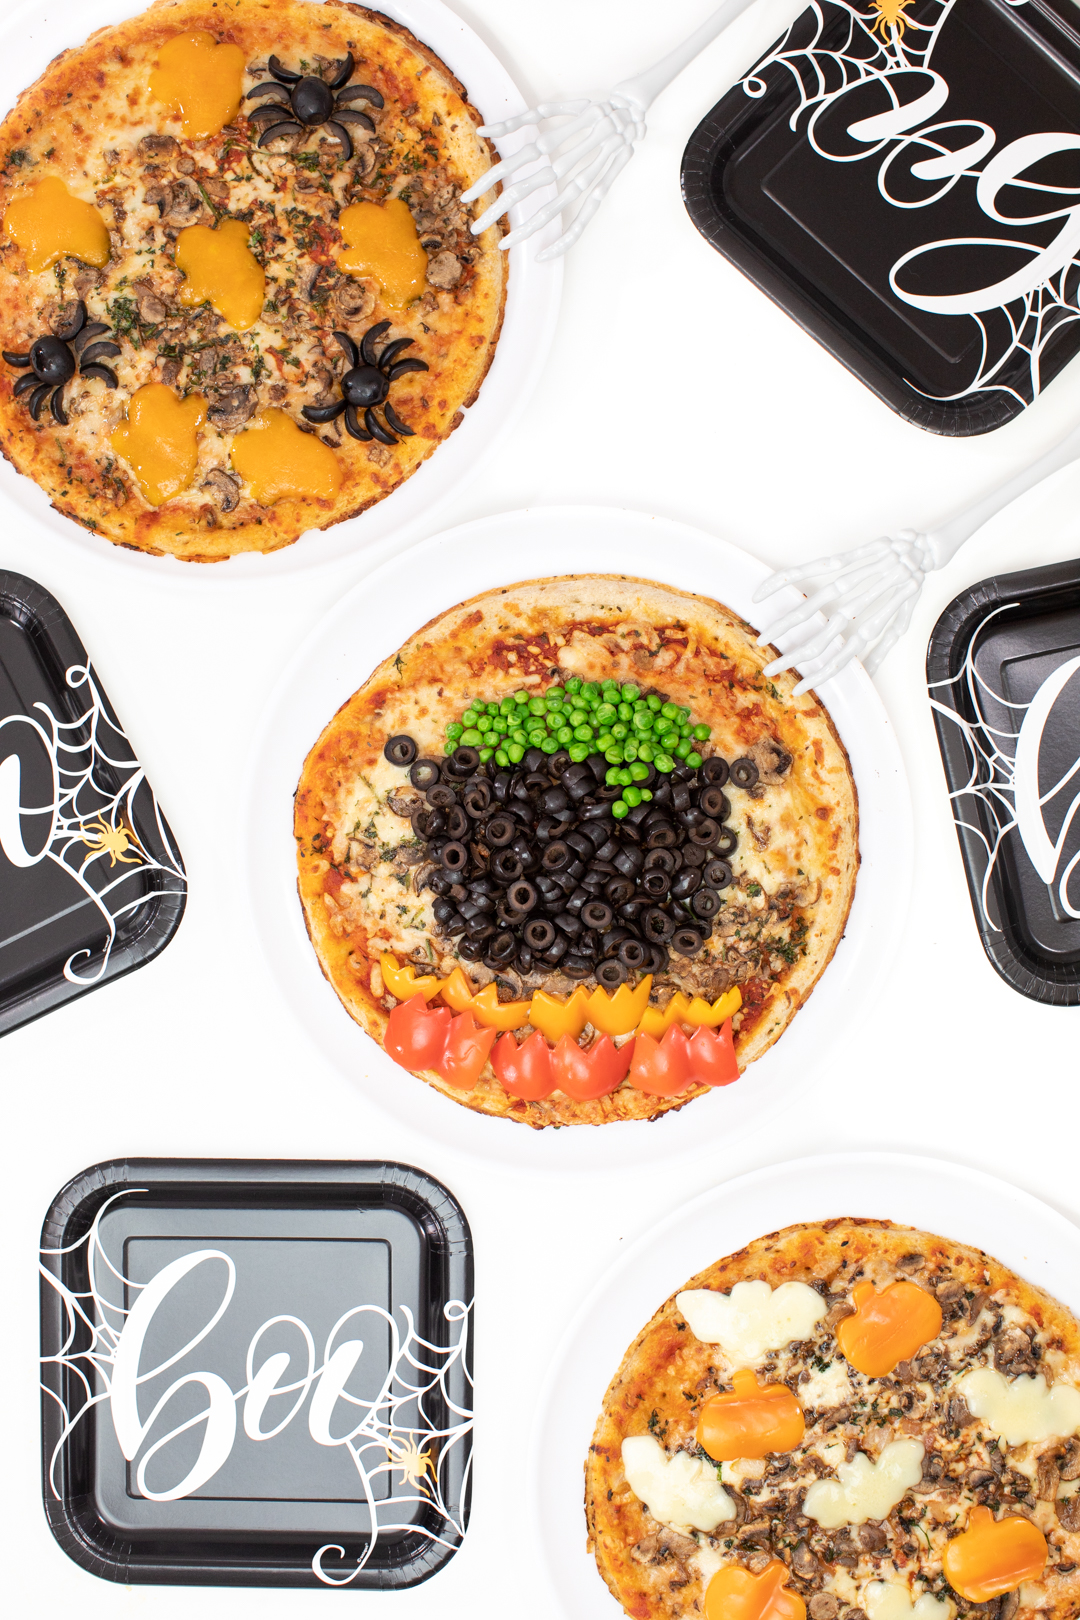 pizza party ideas to celebrate halloween. Festive witch inspired pizza and halloween paper serve-wear.